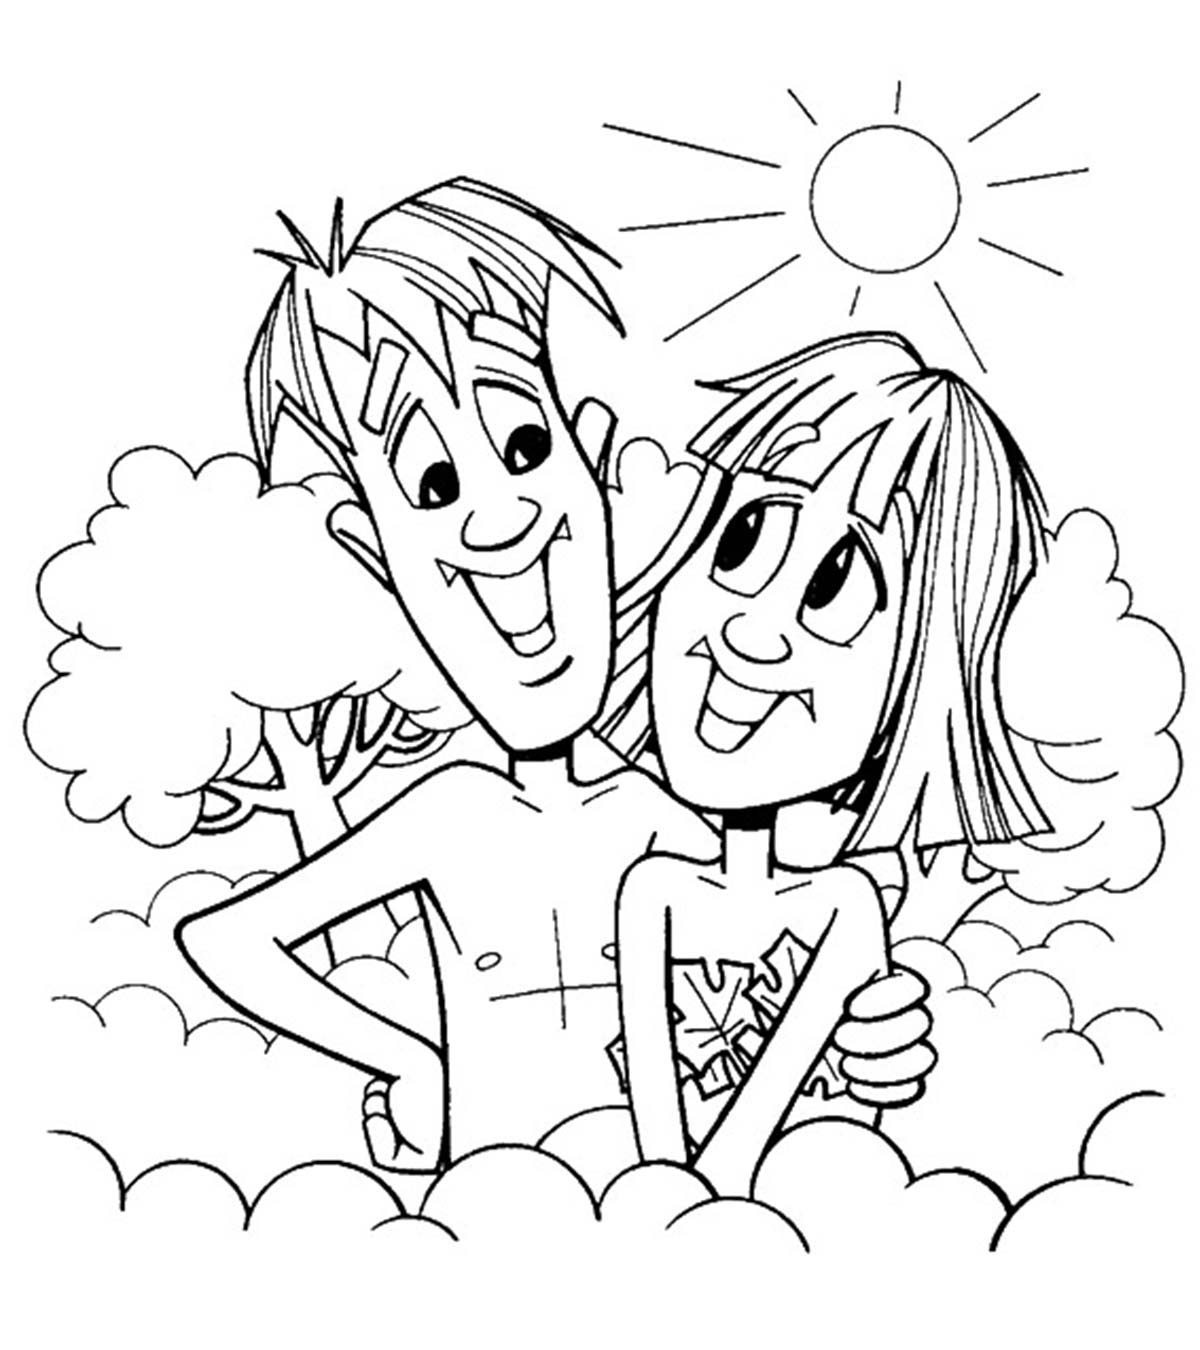 coloring page adam and eve adam and eve coloring page coloring home coloring eve adam and page